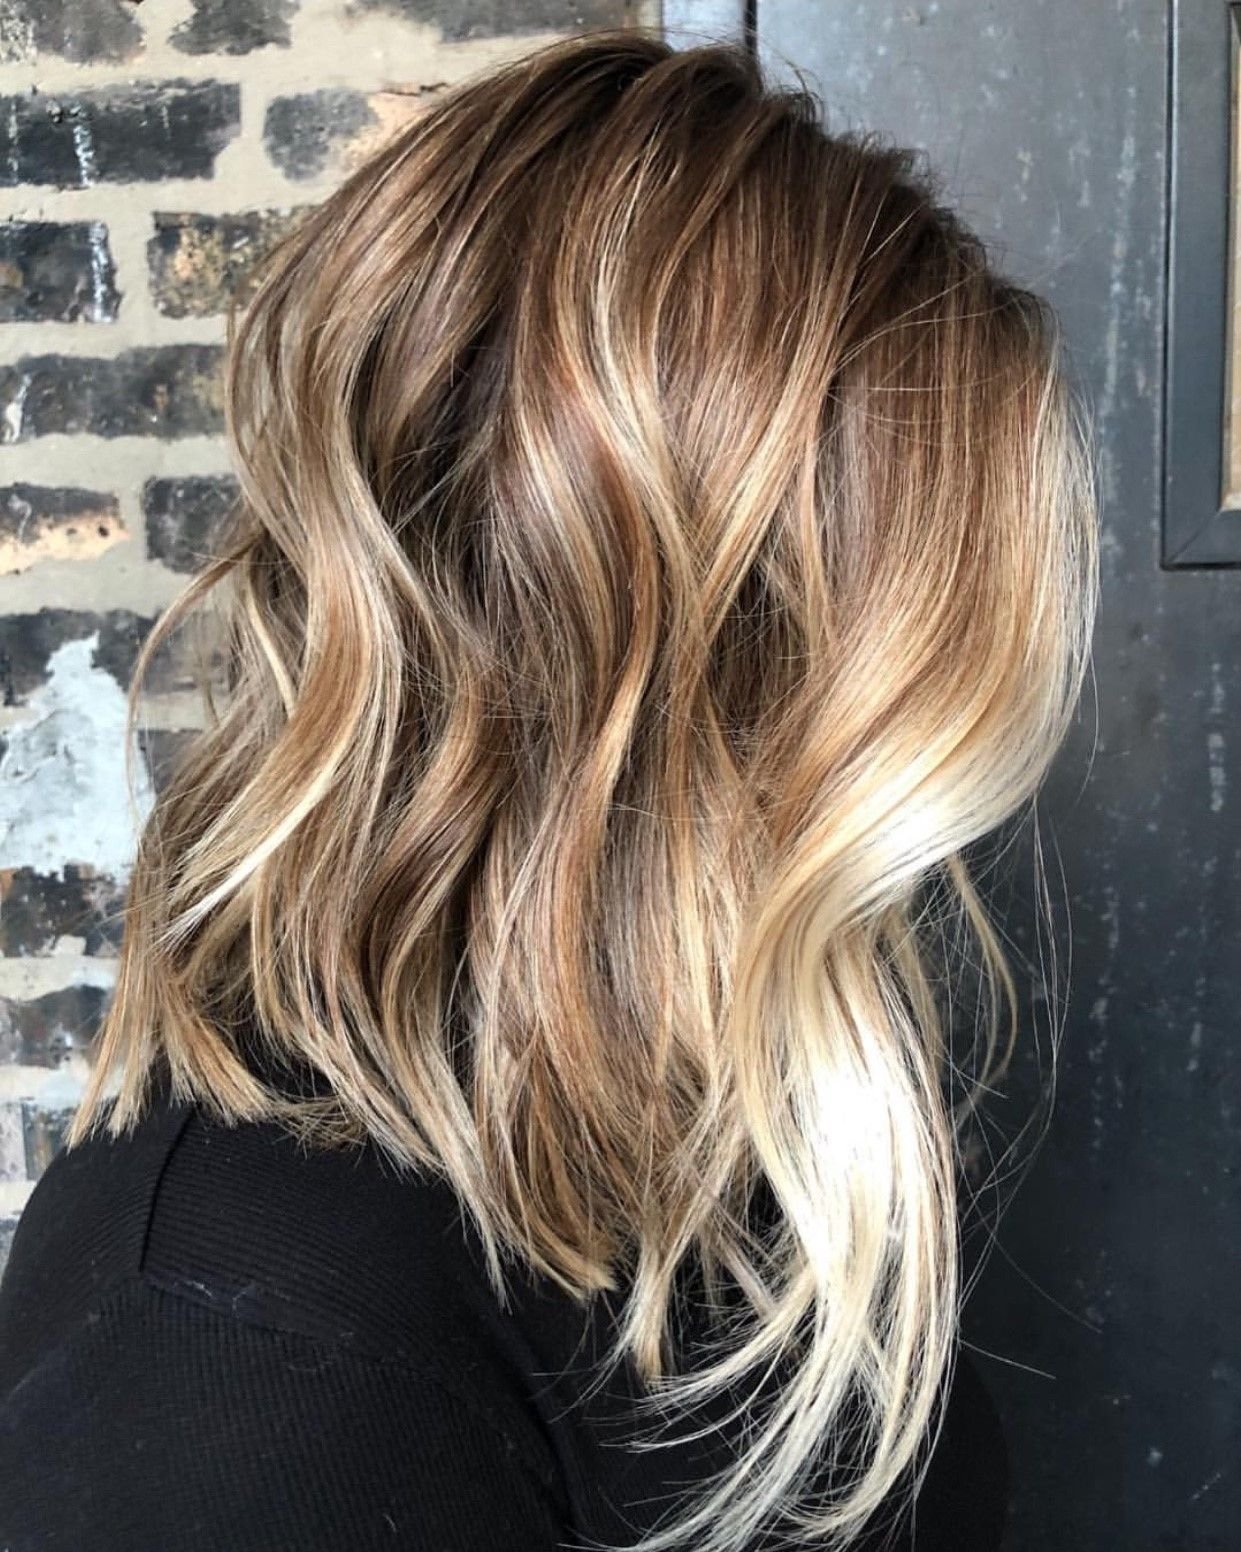 How to Care for Balayage Hair